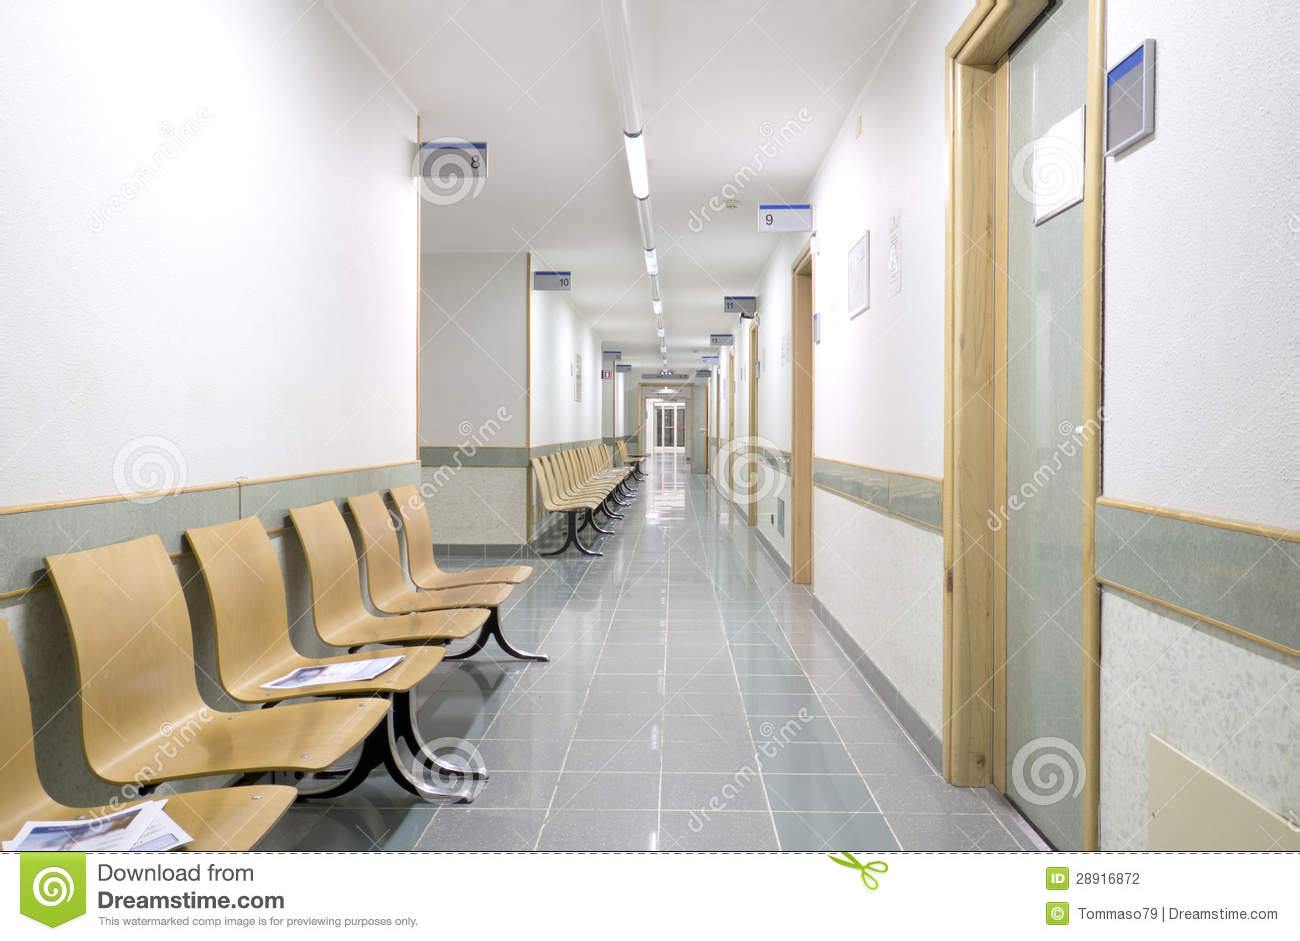 Hospital Interiors Stock Photography Image 28916872